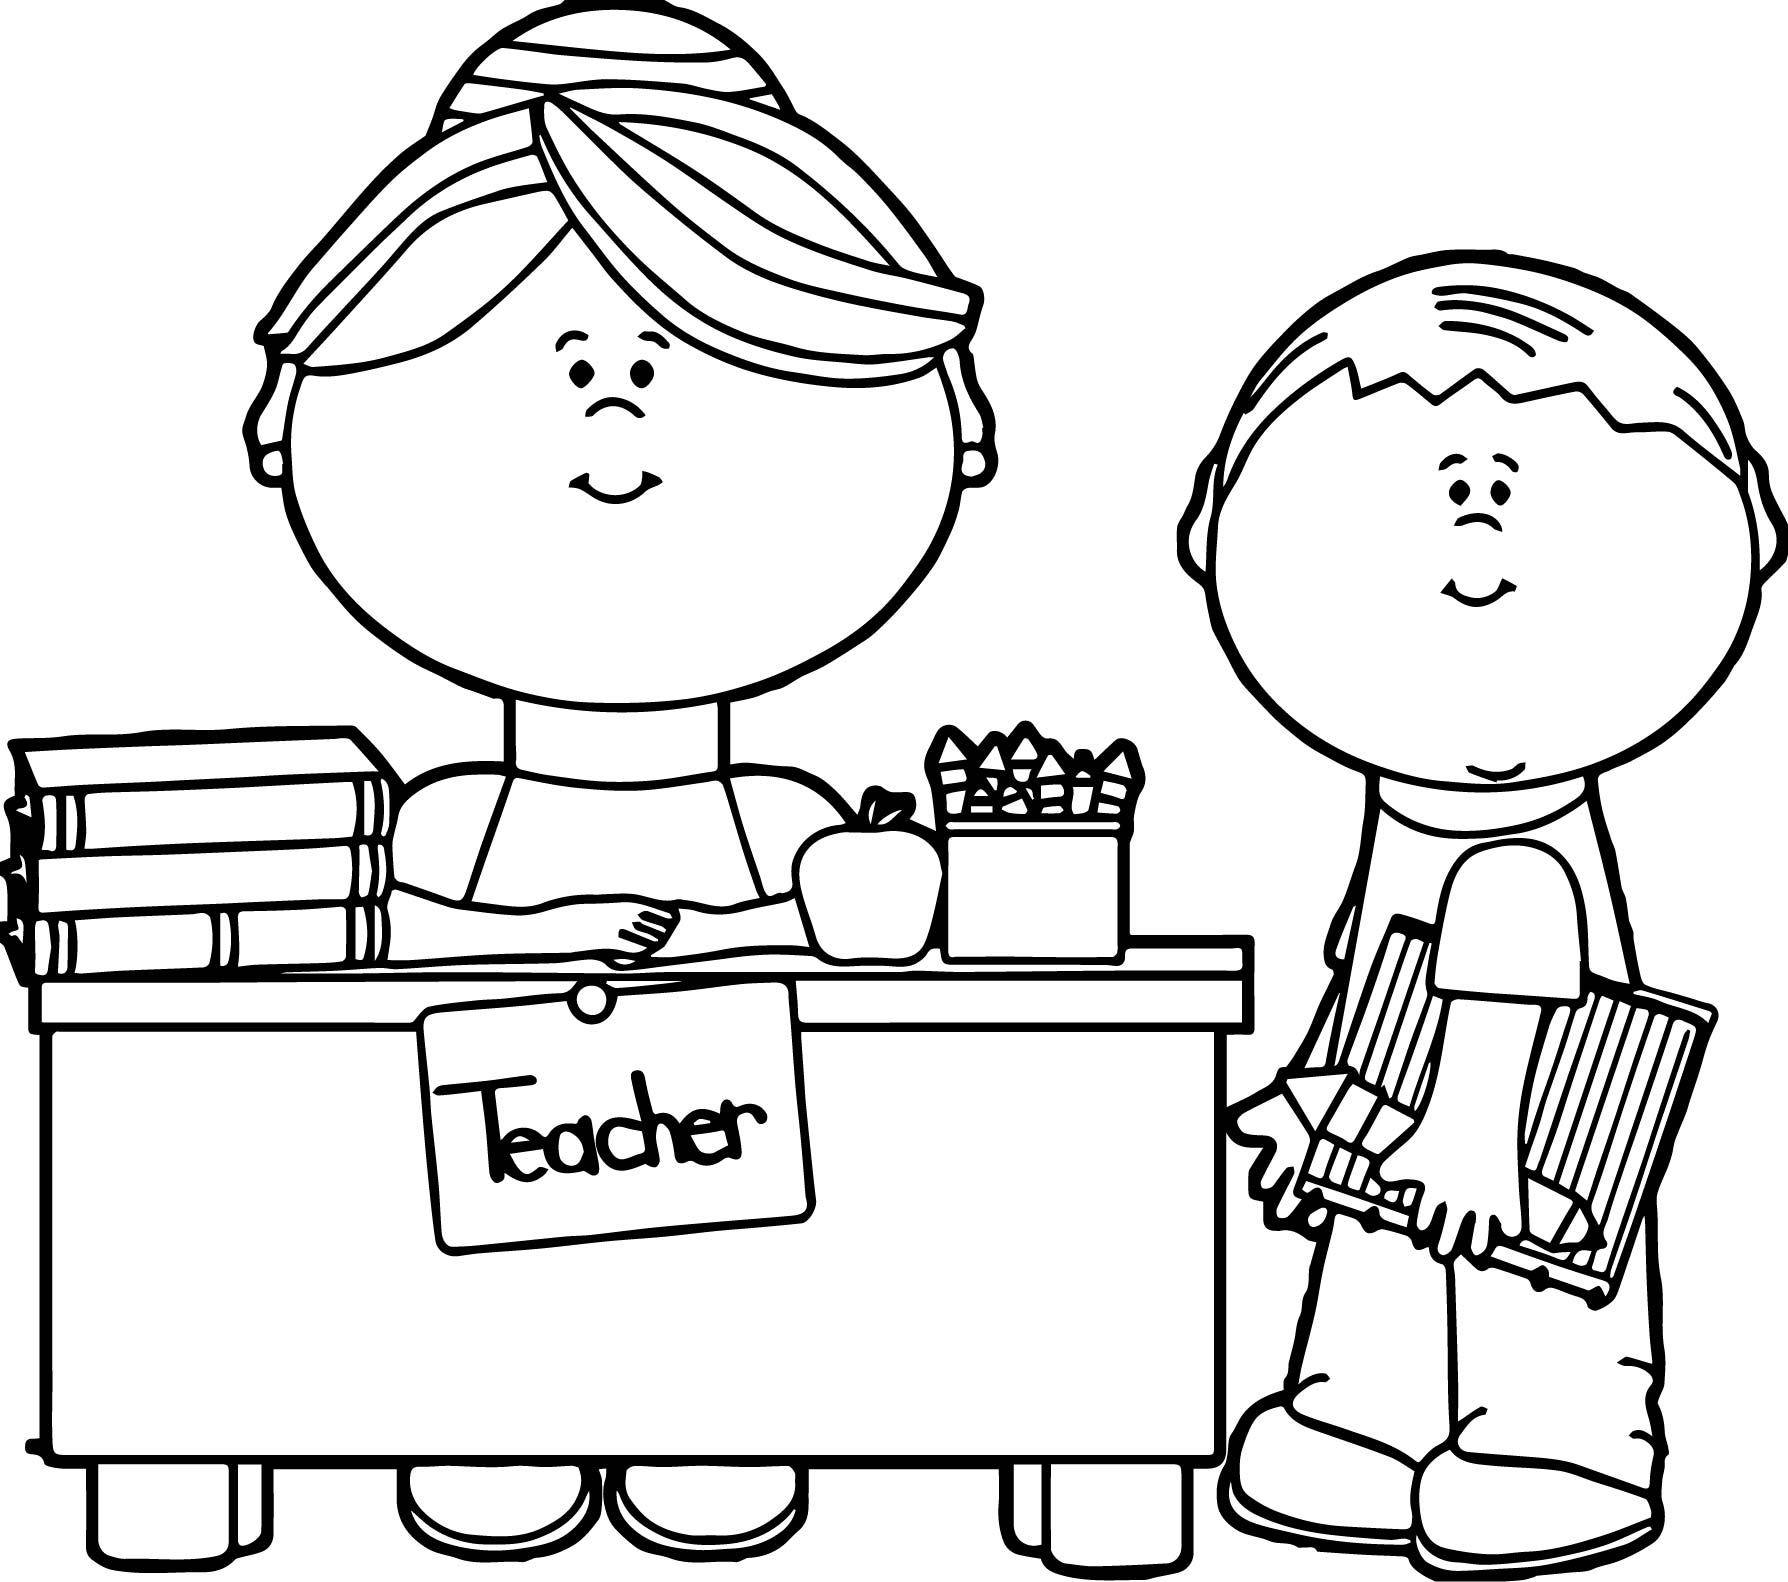 coloring pages of a teacher - photo#16